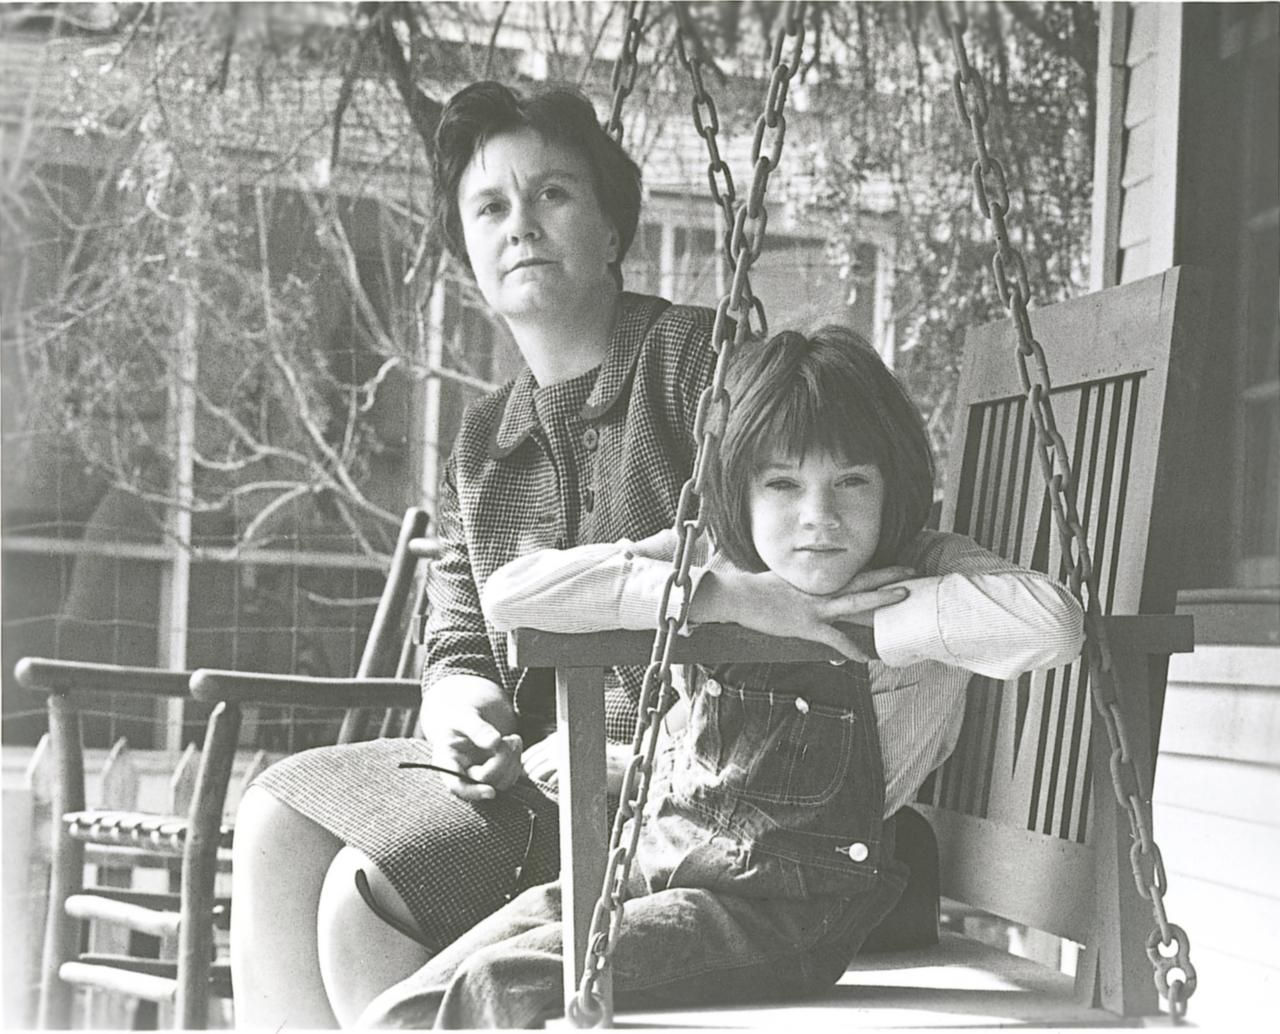 Author Harper Lee with 9-year-old Mary Badham, who portrayed Scout Finch in the screen adaptation of To Kill a Mockingbird.